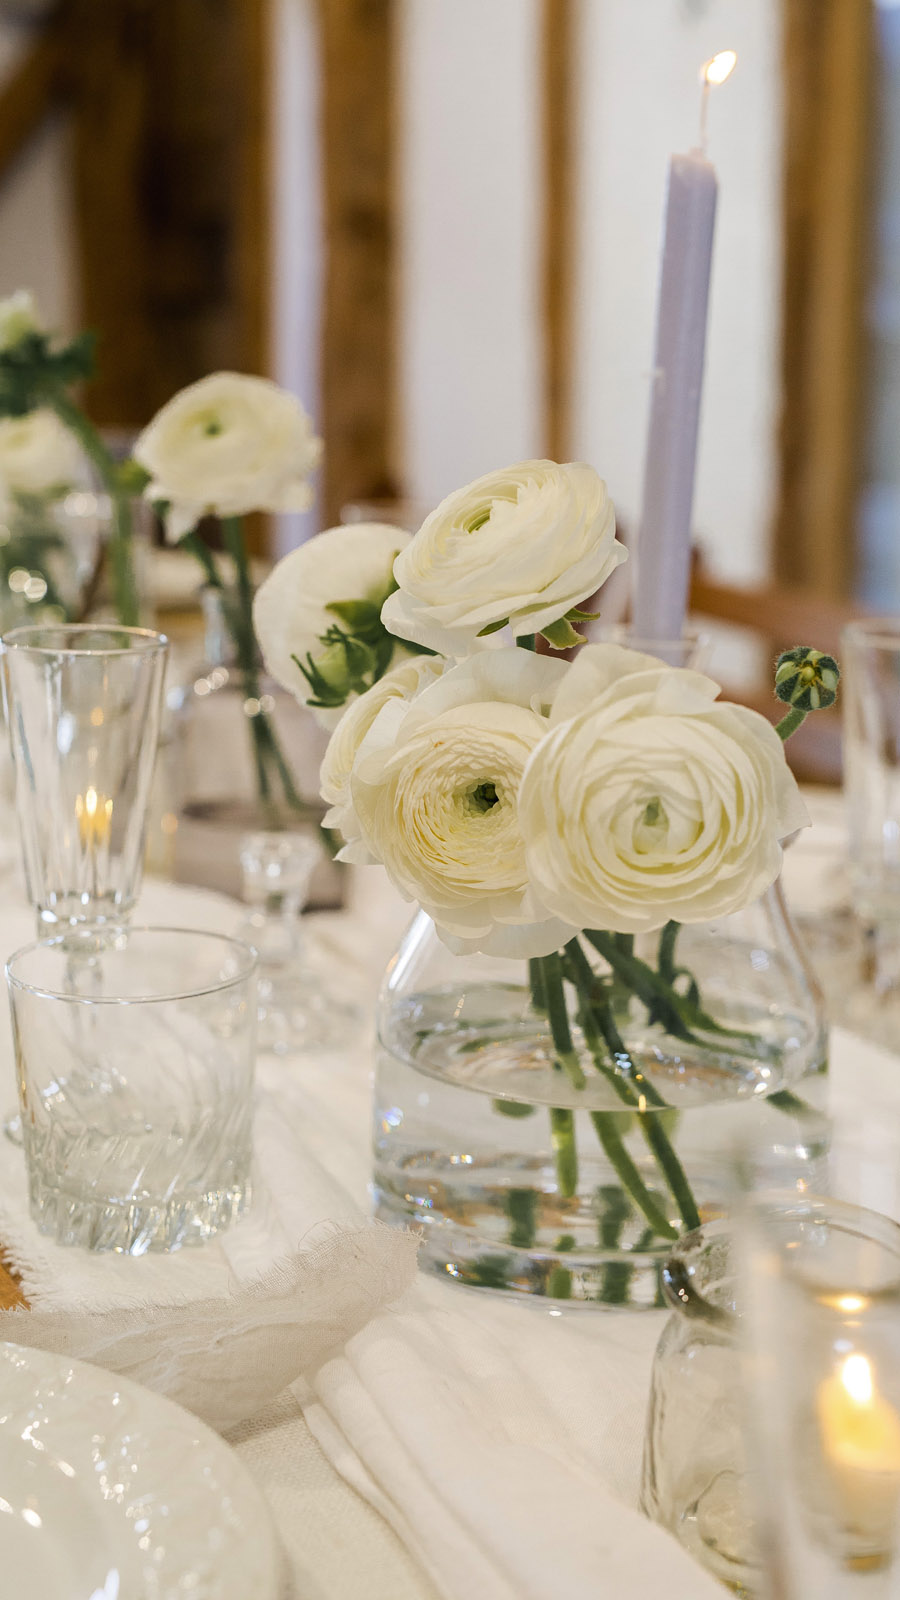 Sustainable, vegan and organic wedding styling ideas from the UK (18)